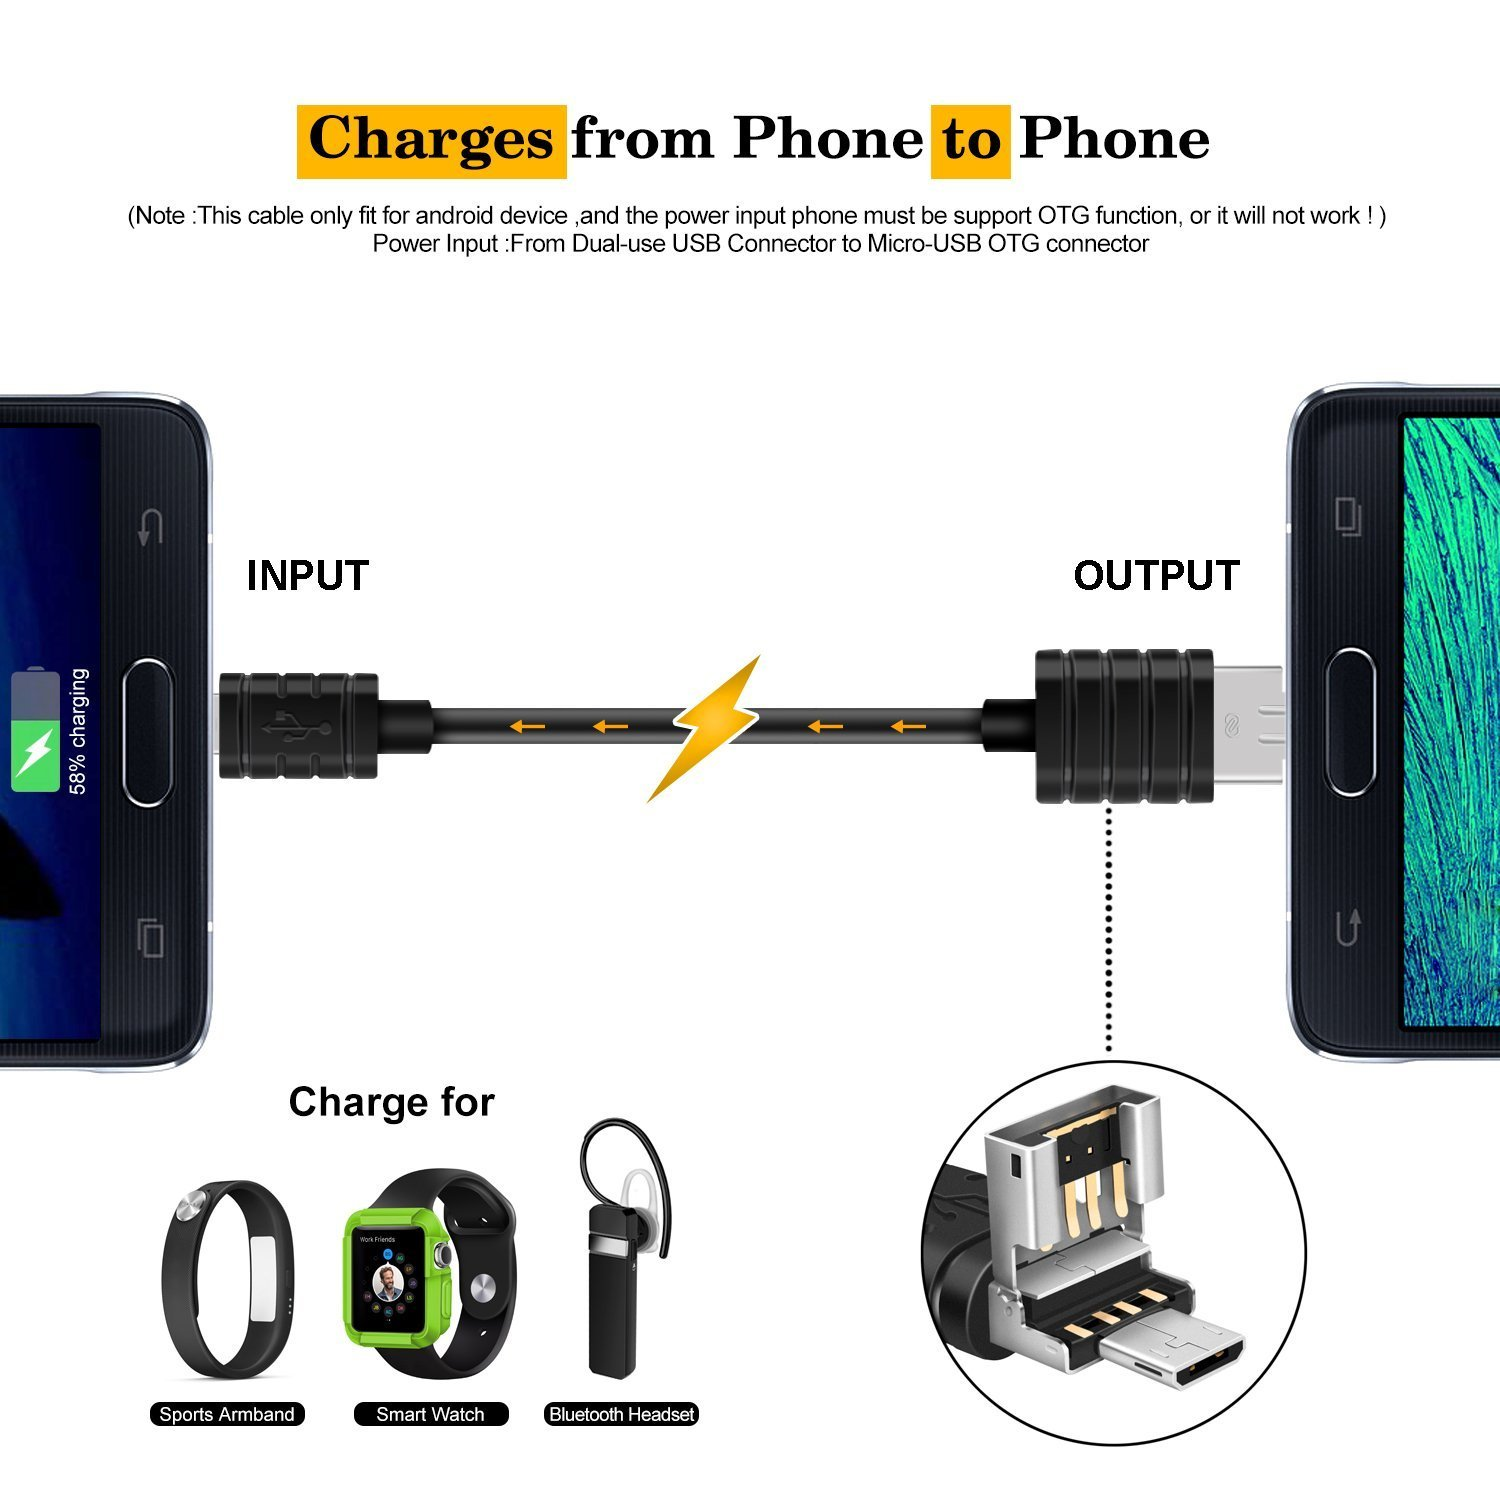 Accessories & Parts Chargers Impartial Universal Wristband Micro Usb Cable Charger Charging Data Sync For Android Cell Phone Micro Usb Cable Cord Power Convenience Goods